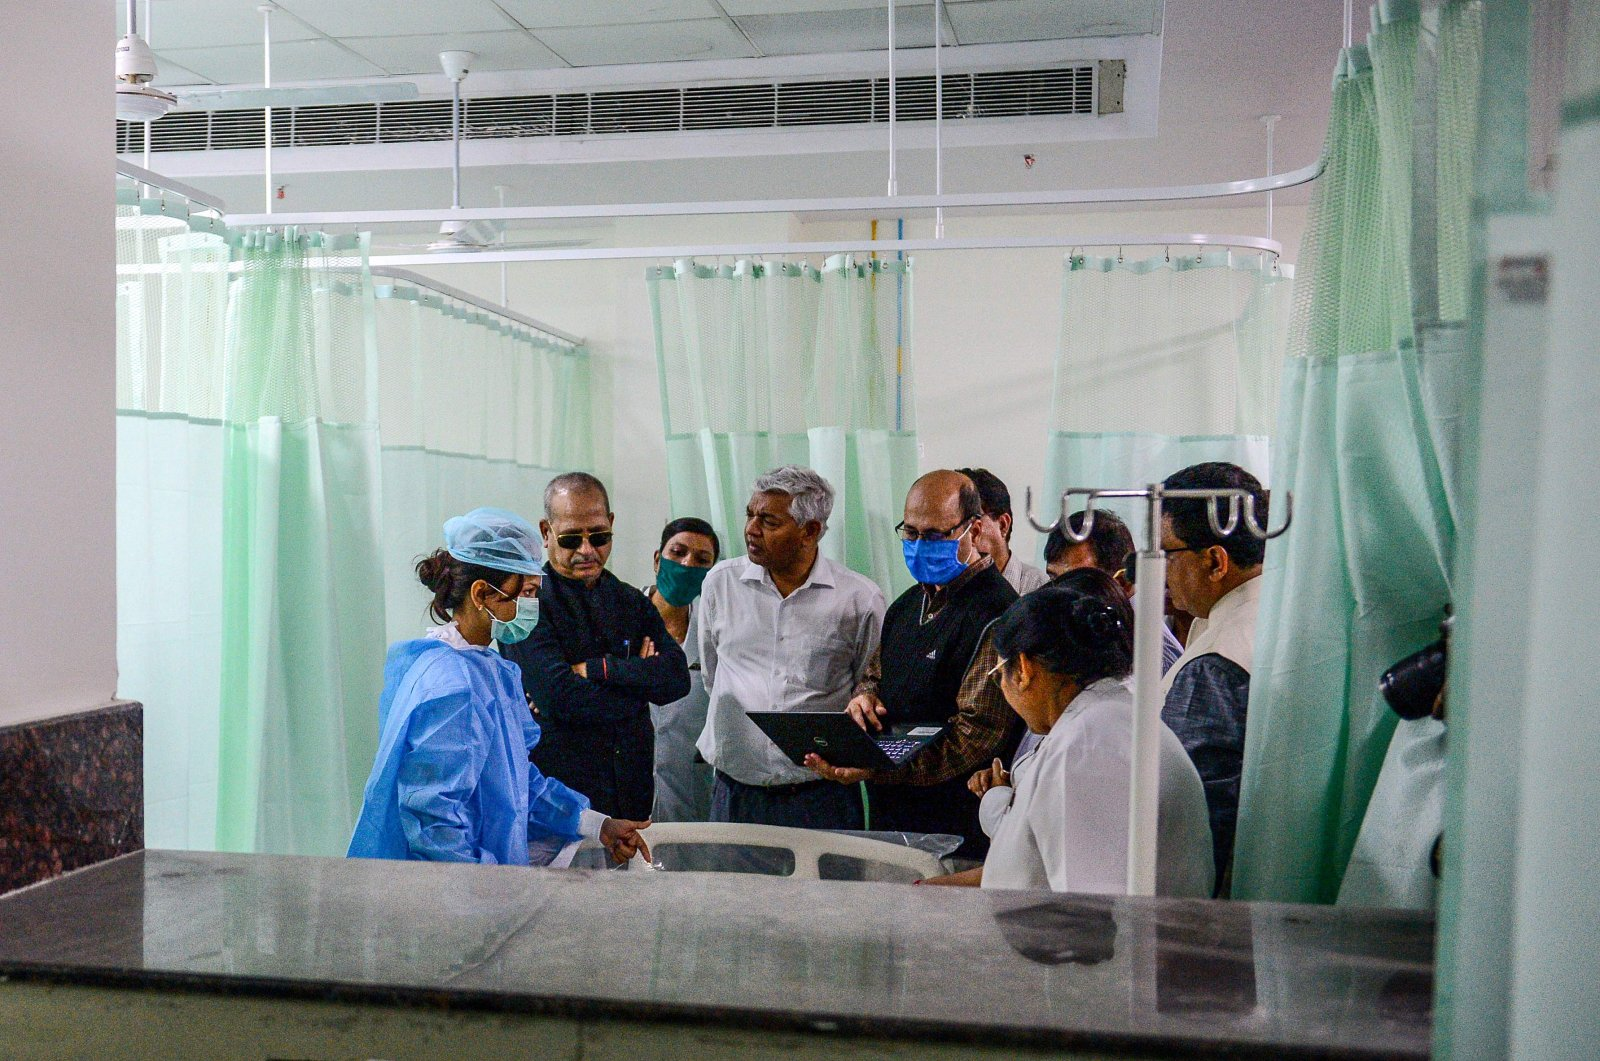 Health department officials and doctors participate in a mock drill practice with a mock patient at SRN Hospital, Allahabad, Wednesday, March 18, 2020. (AFP Photo)